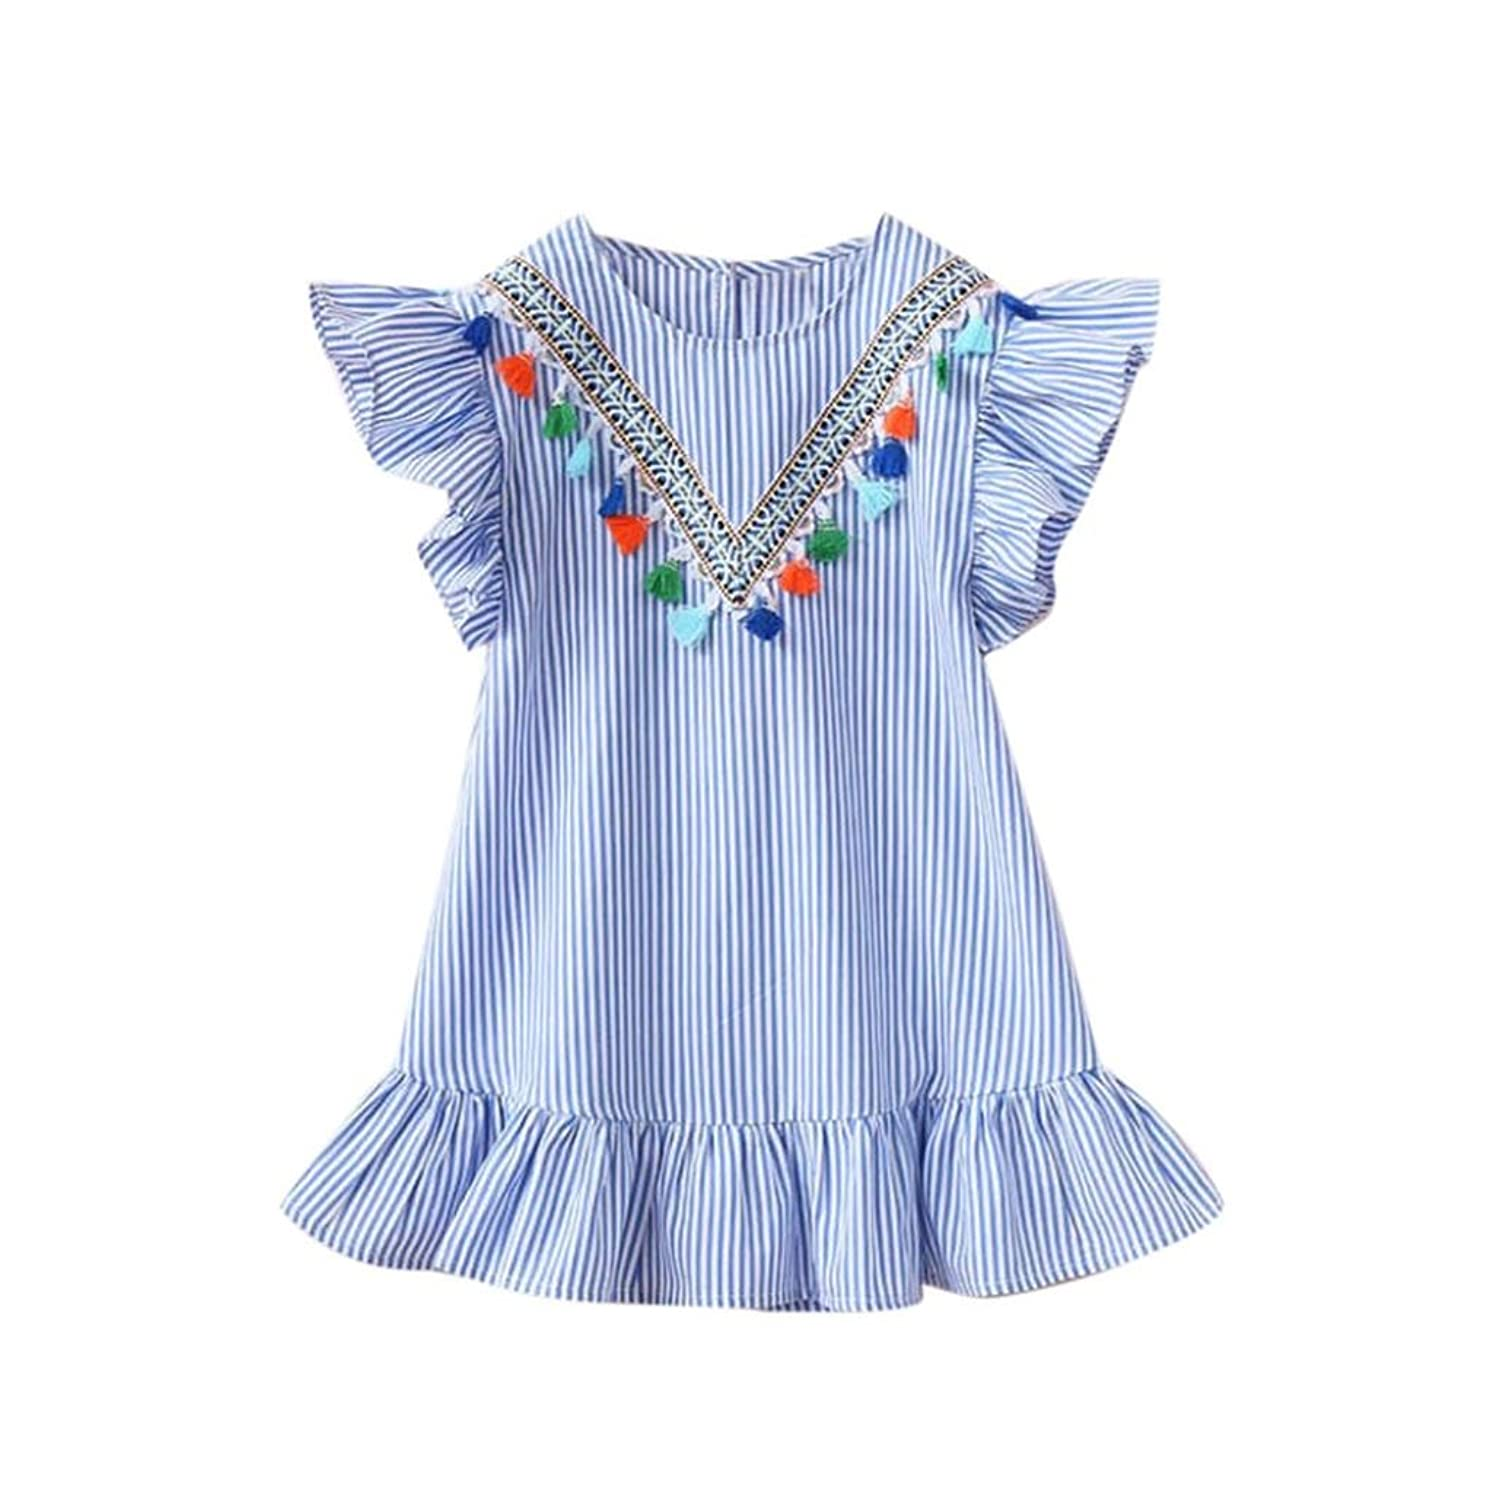 ❤ Vestido de Camisa a Rayas, Toddler Kids Baby Girls Clothes Stripe Tassel Ruffles Parte Princesa Wed Vestidos Absolute: Amazon.es: Ropa y accesorios